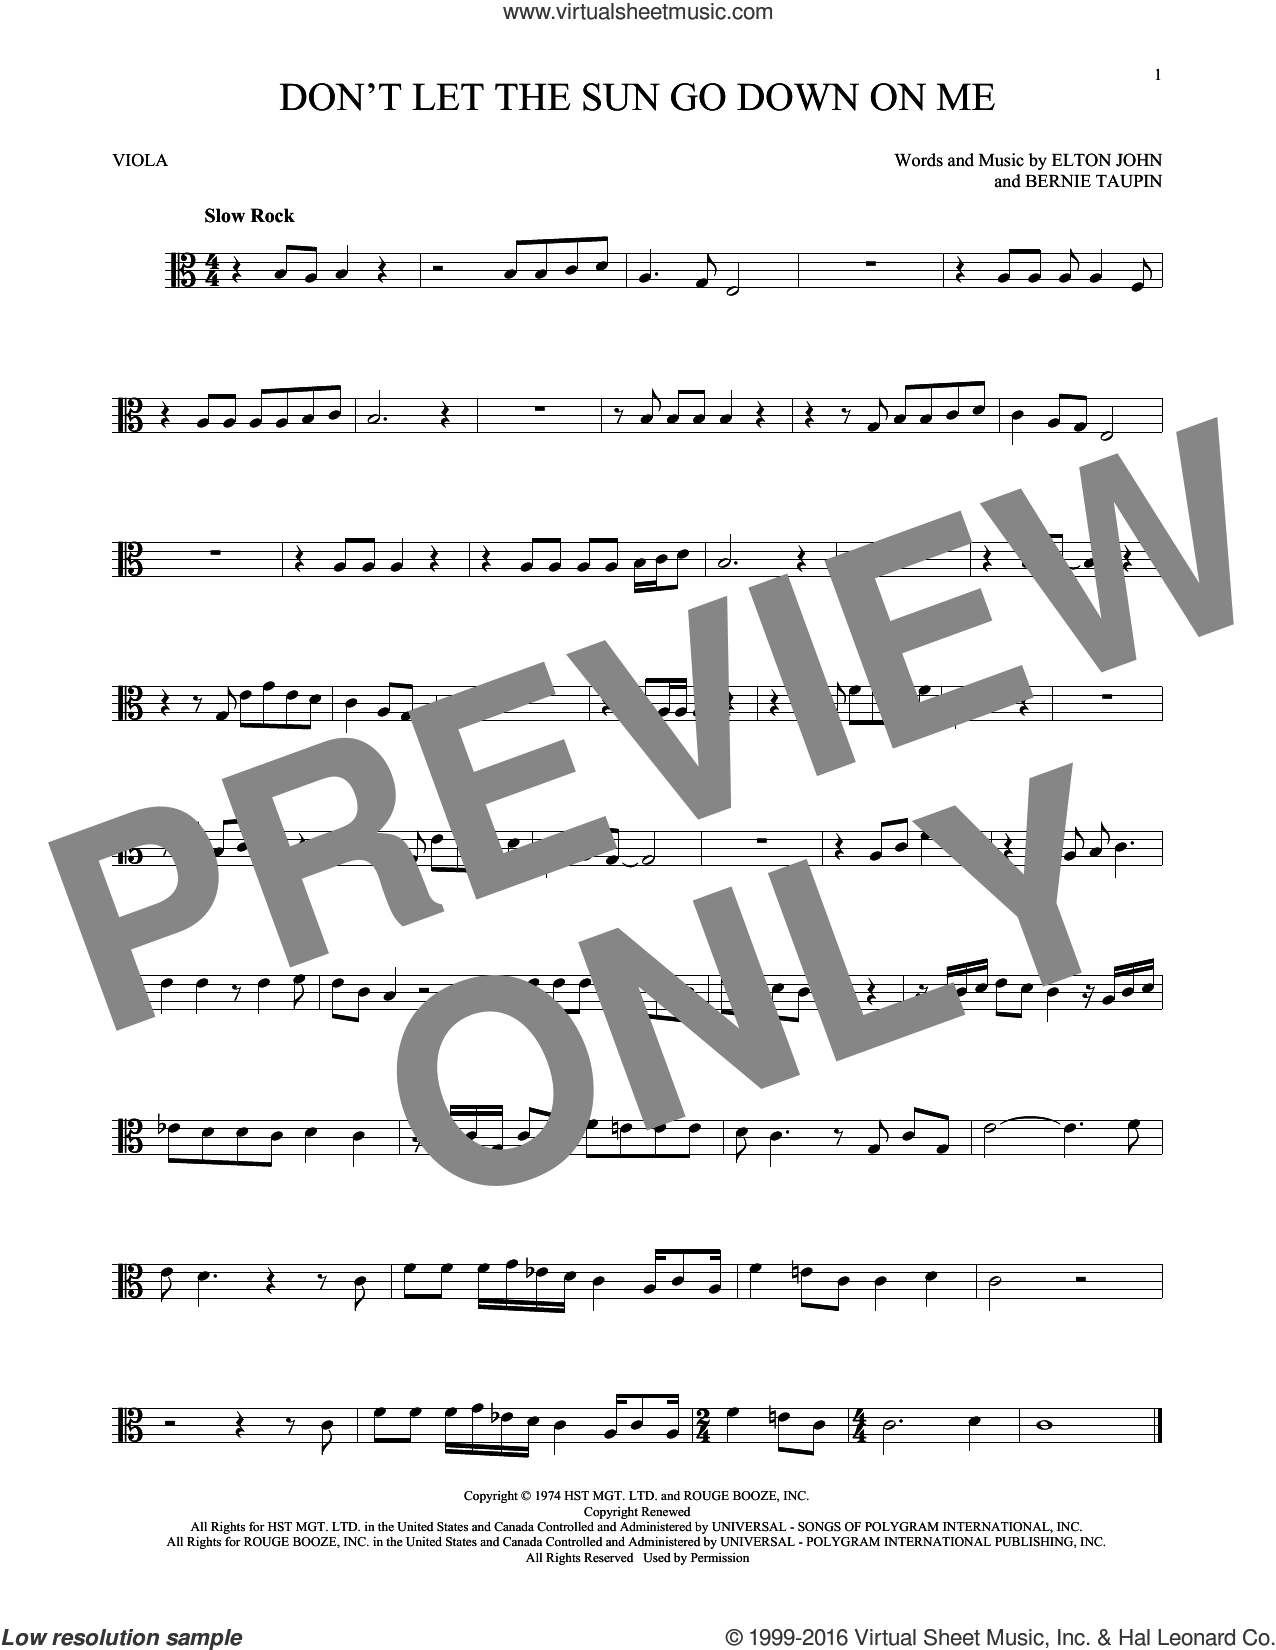 Don't Let The Sun Go Down On Me sheet music for viola solo by Elton John & George Michael, David Archuleta, Bernie Taupin and Elton John, intermediate skill level